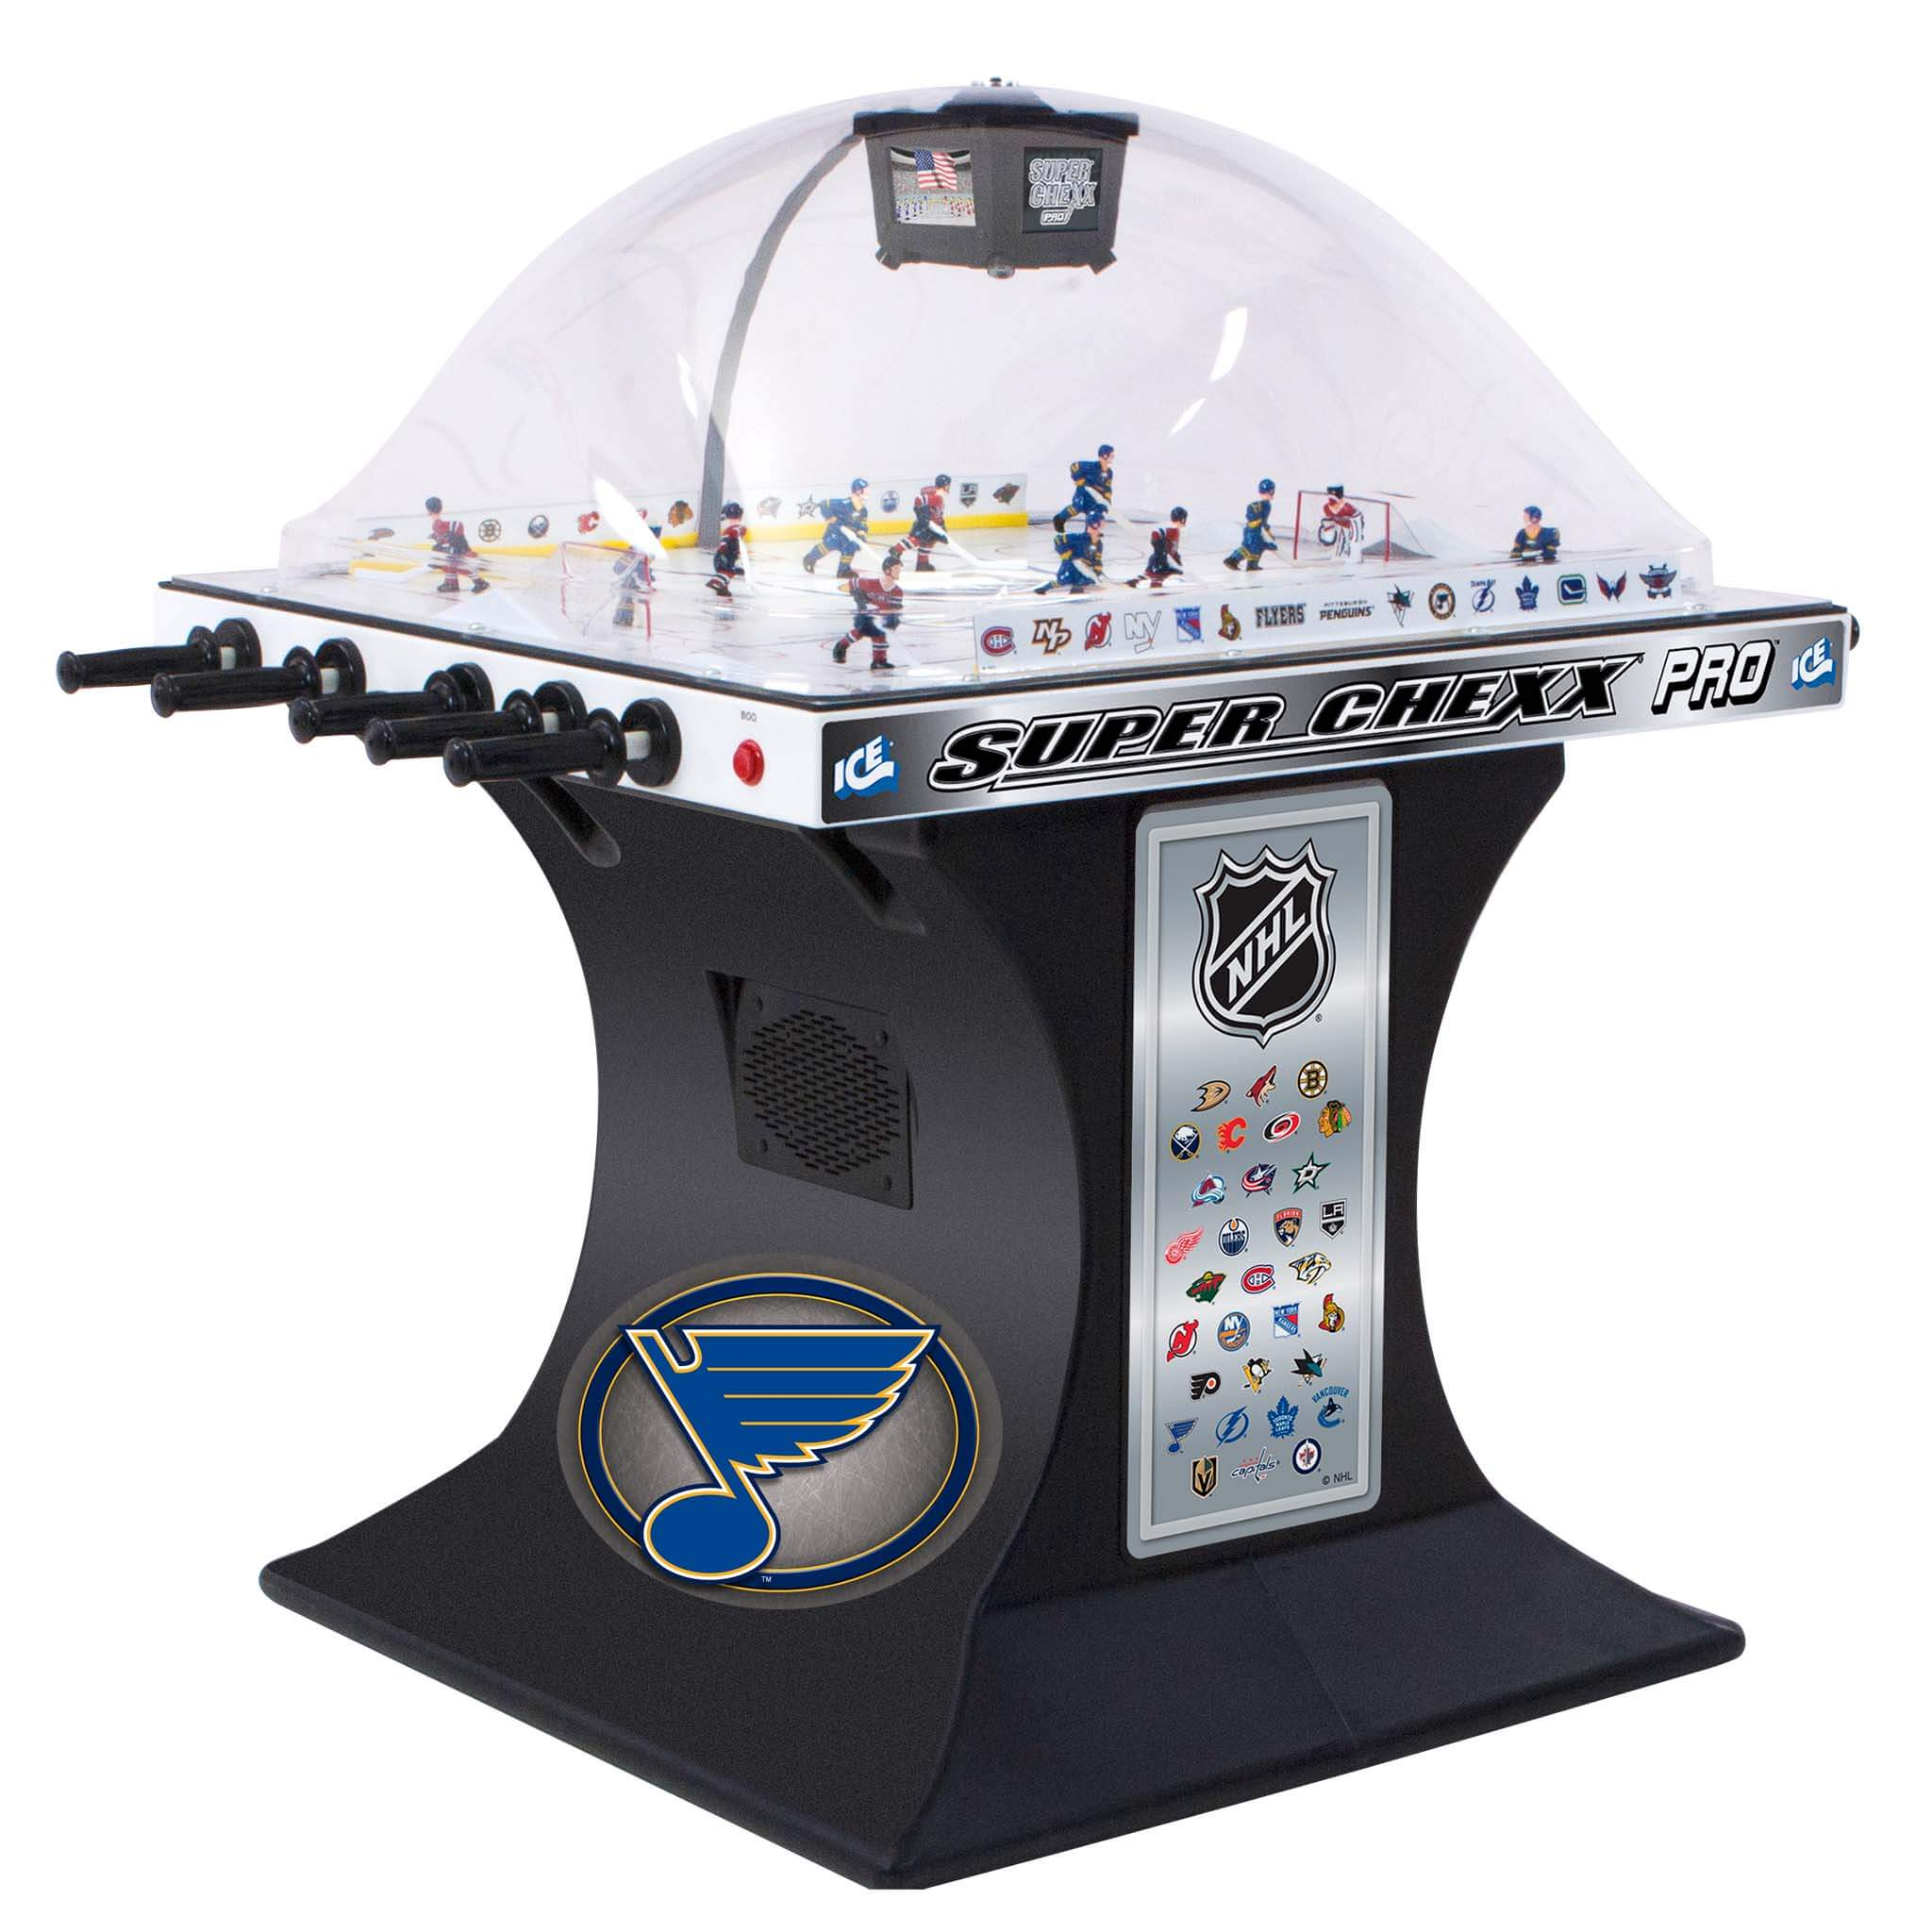 Buy Nhl Licenced Super Chexx Pro Bubble Hockey Choose Your Teams Online At 3999